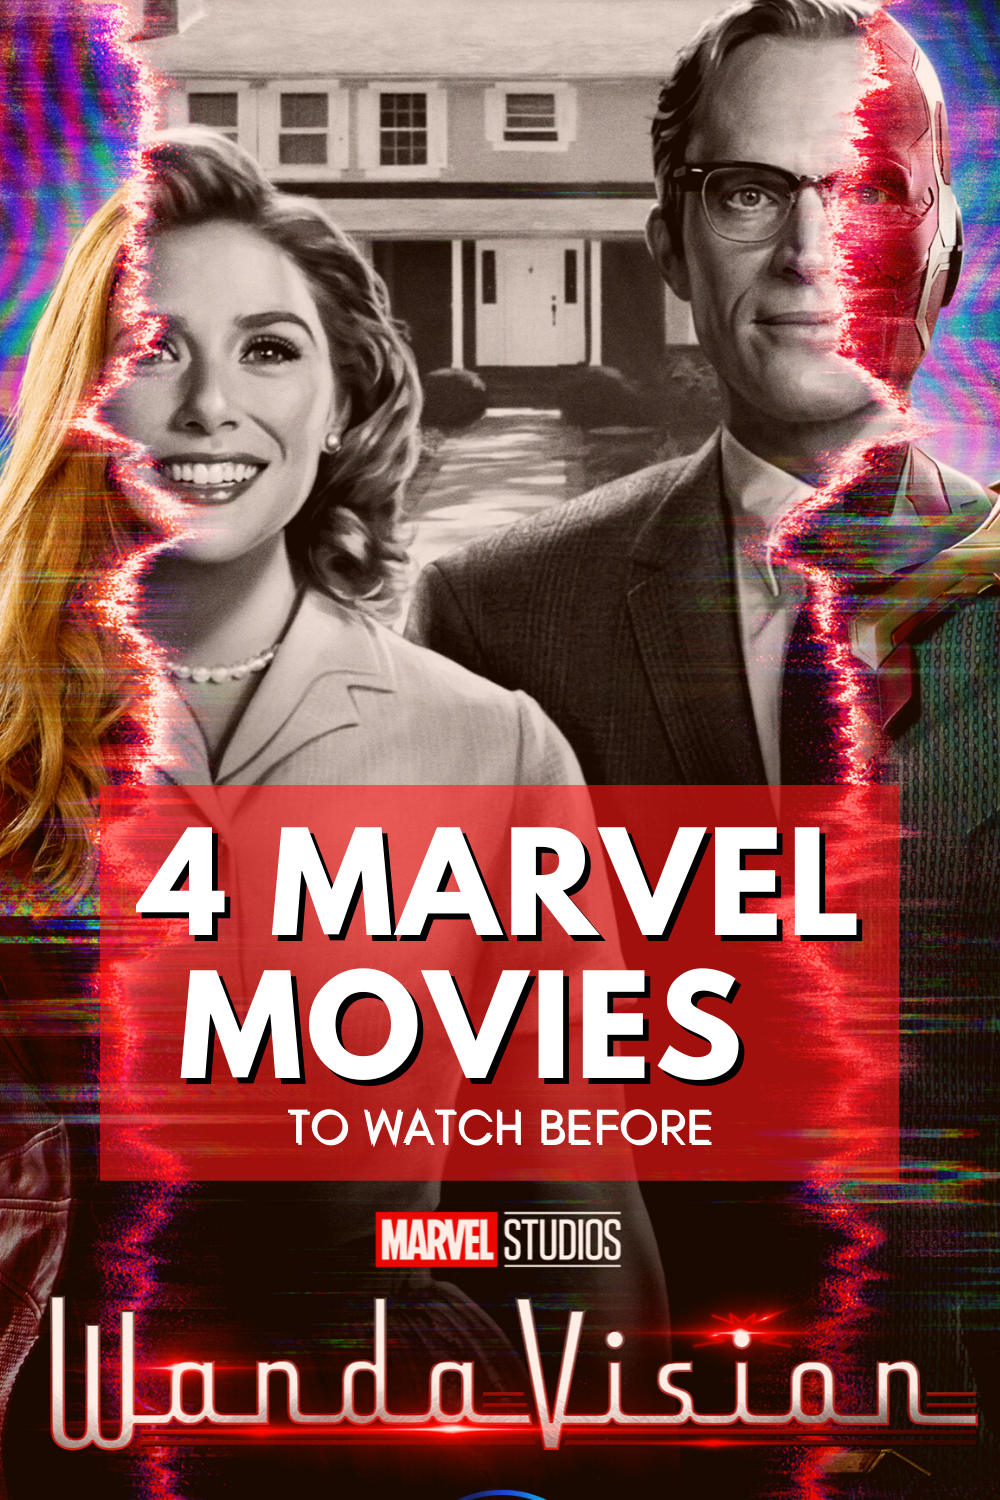 4 Marvel Movies To Watch Before Wandavision Popcorner Reviews